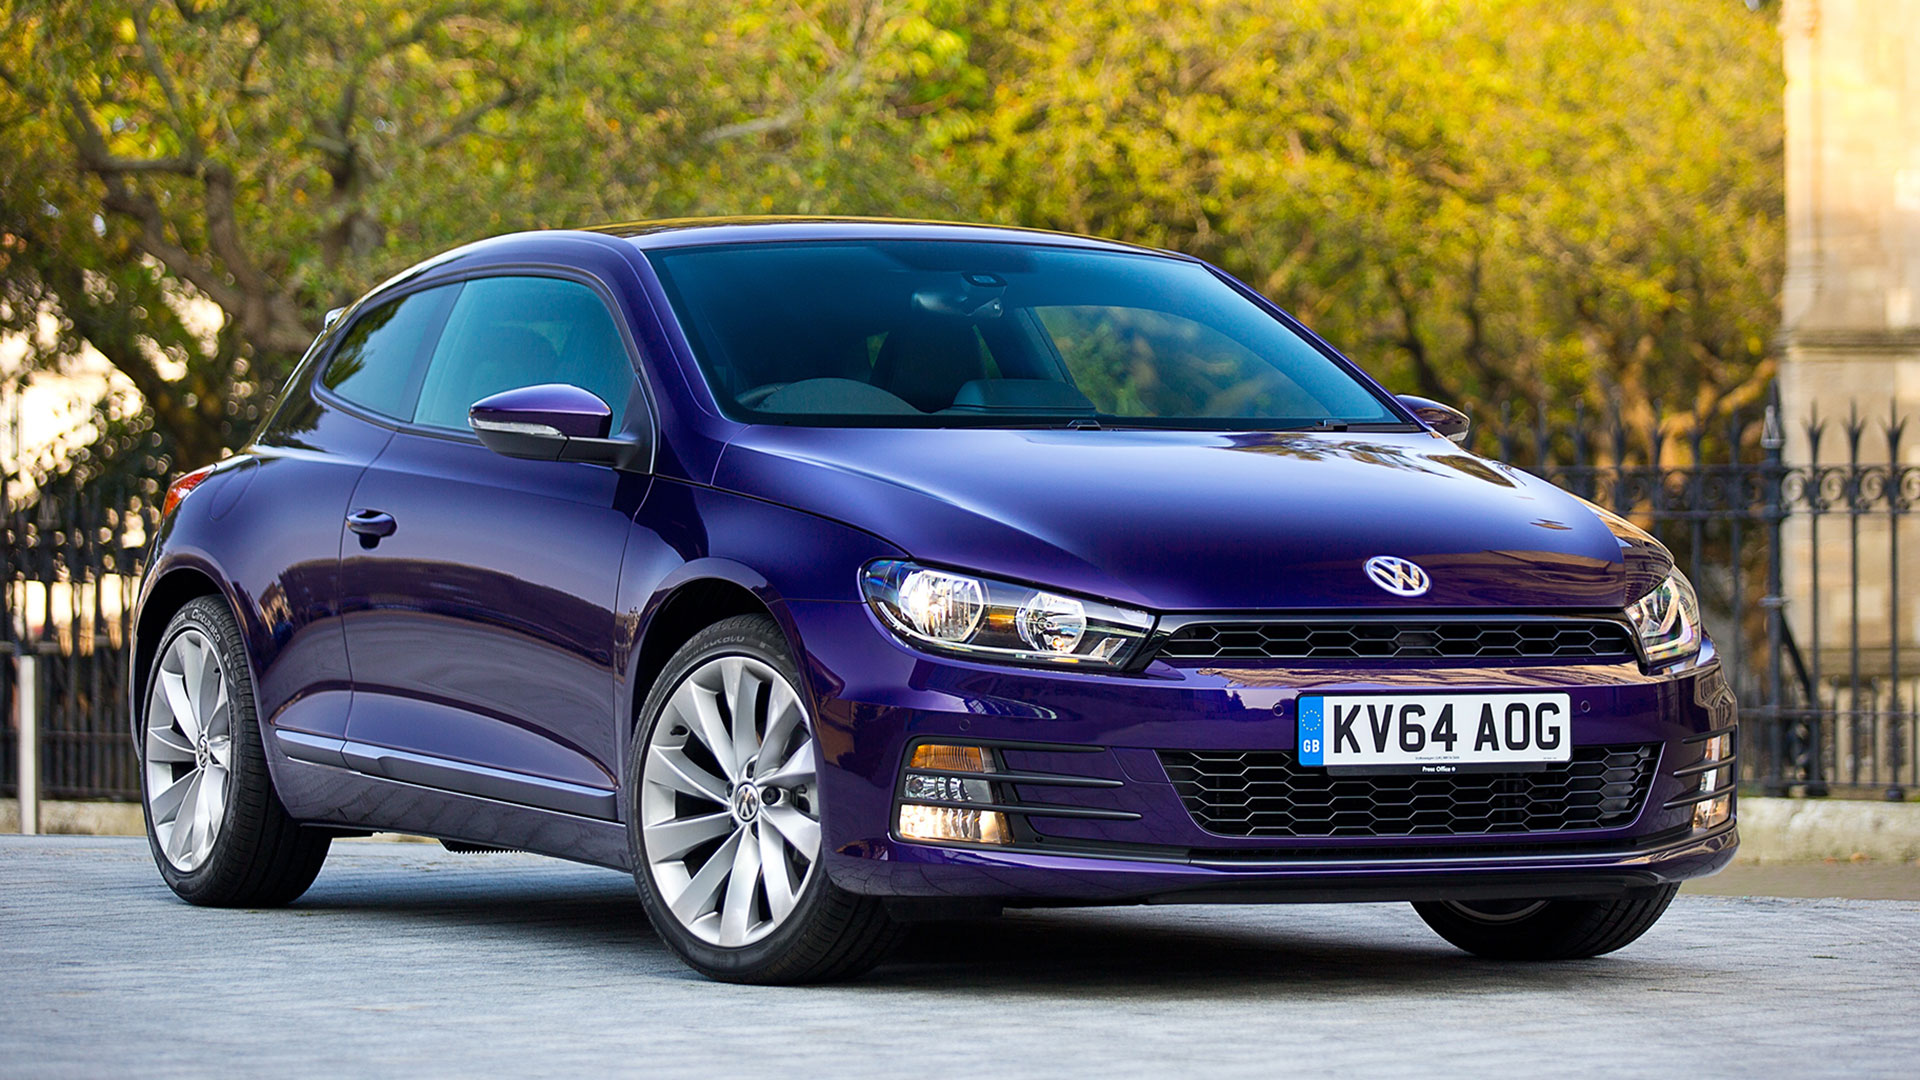 find used volkswagen scirocco cars for sale on auto trader uk. Black Bedroom Furniture Sets. Home Design Ideas